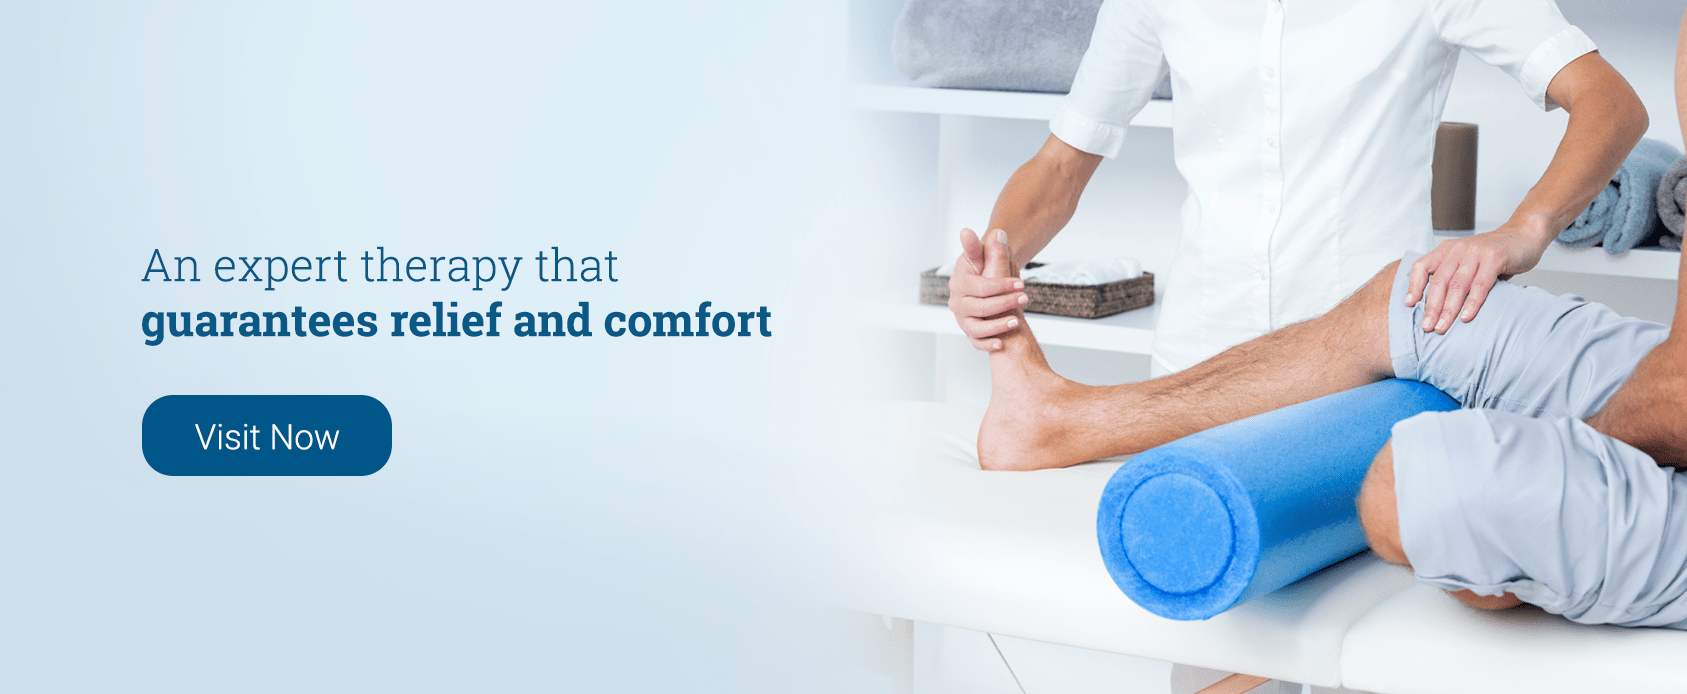 Physiotherapists will relieve you from pain